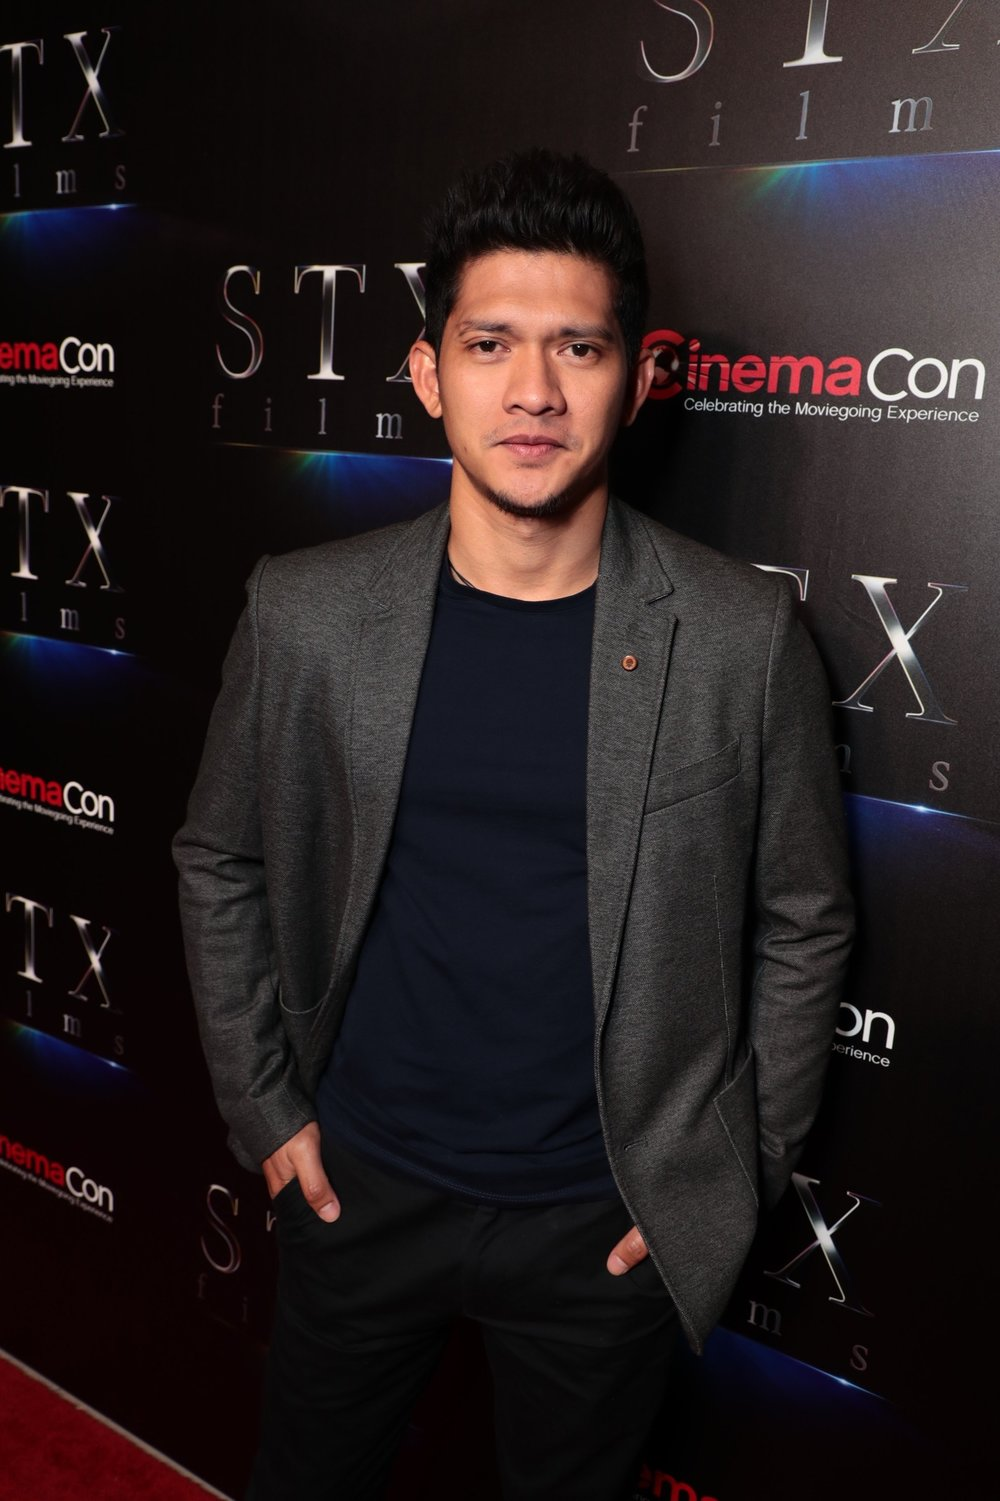 Iko Uwais attends STXfilms' 2018 CinemaCon Presentation at The Colosseum of Caesars Palace, Las Vegas, NV Tuesday, April 24, 2018.